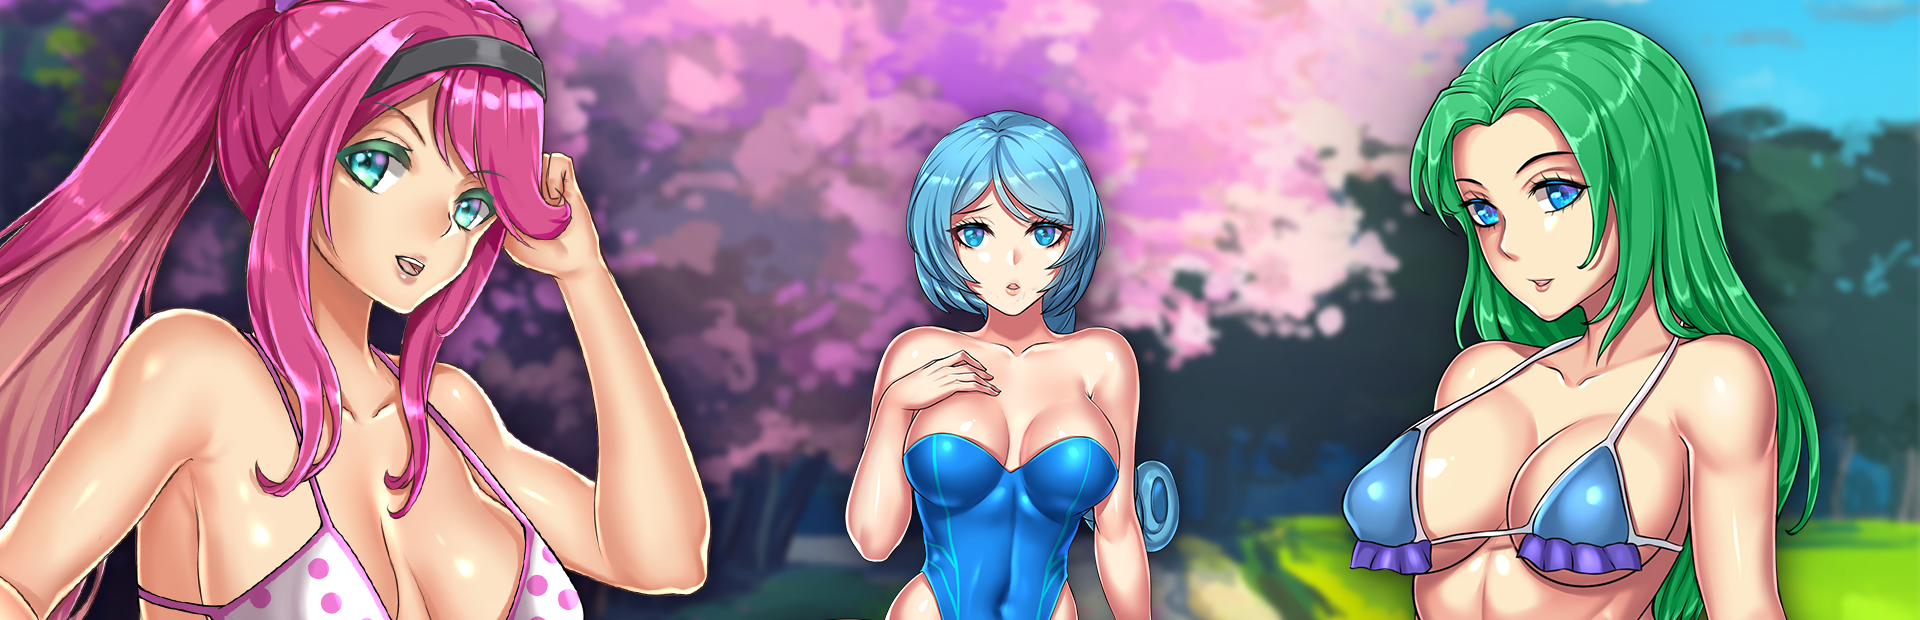 Naked Nude Girl Puzzle Game Scenes